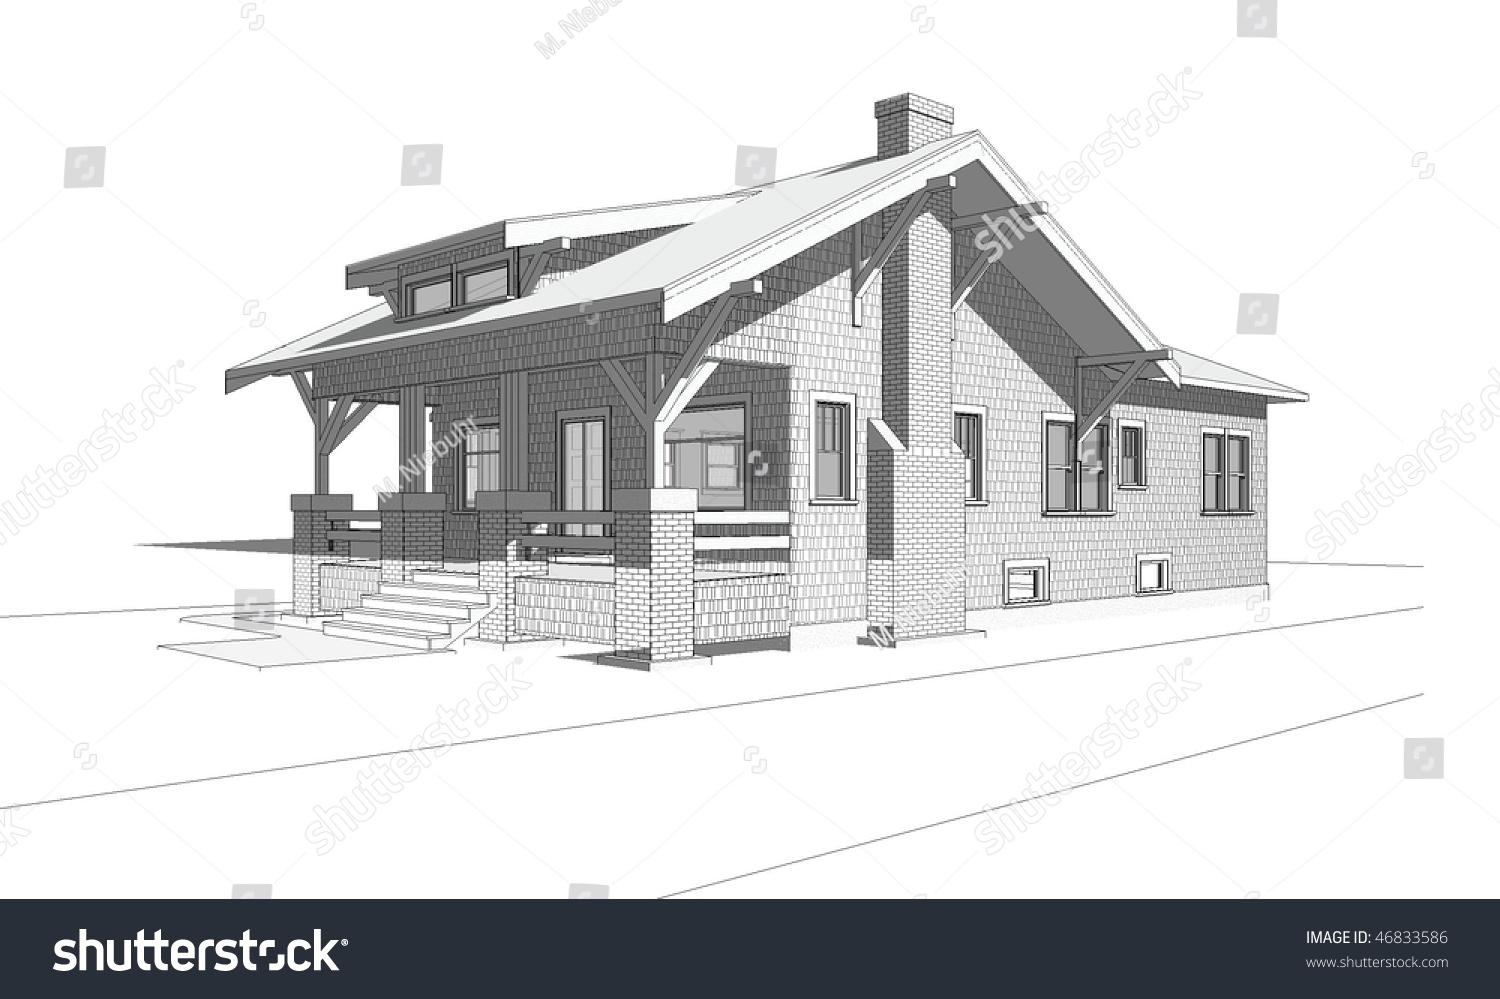 Architectural Perspective Drawing Old Craftsman Style